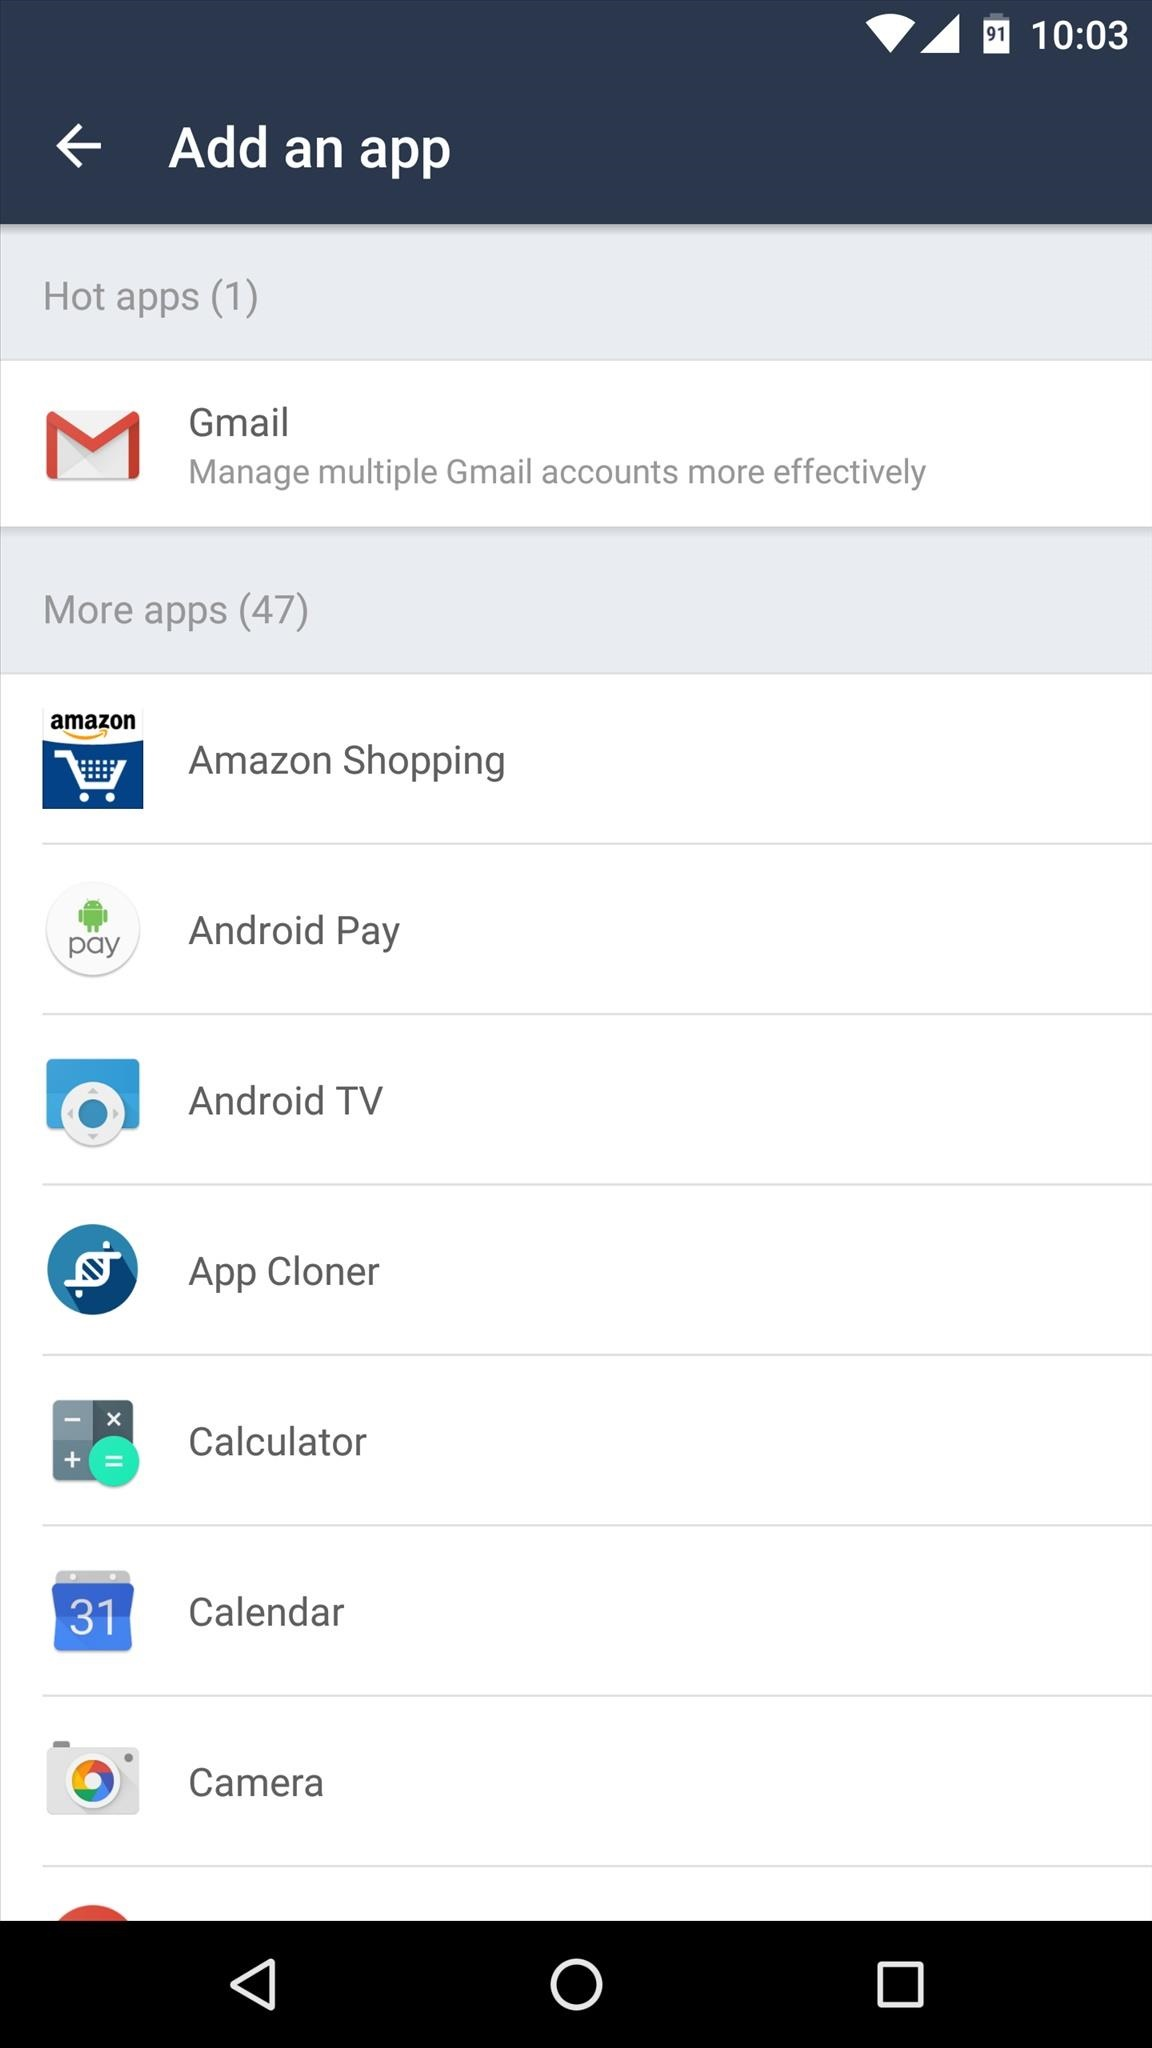 How To Clone Apps On Android To Run Multiple Account